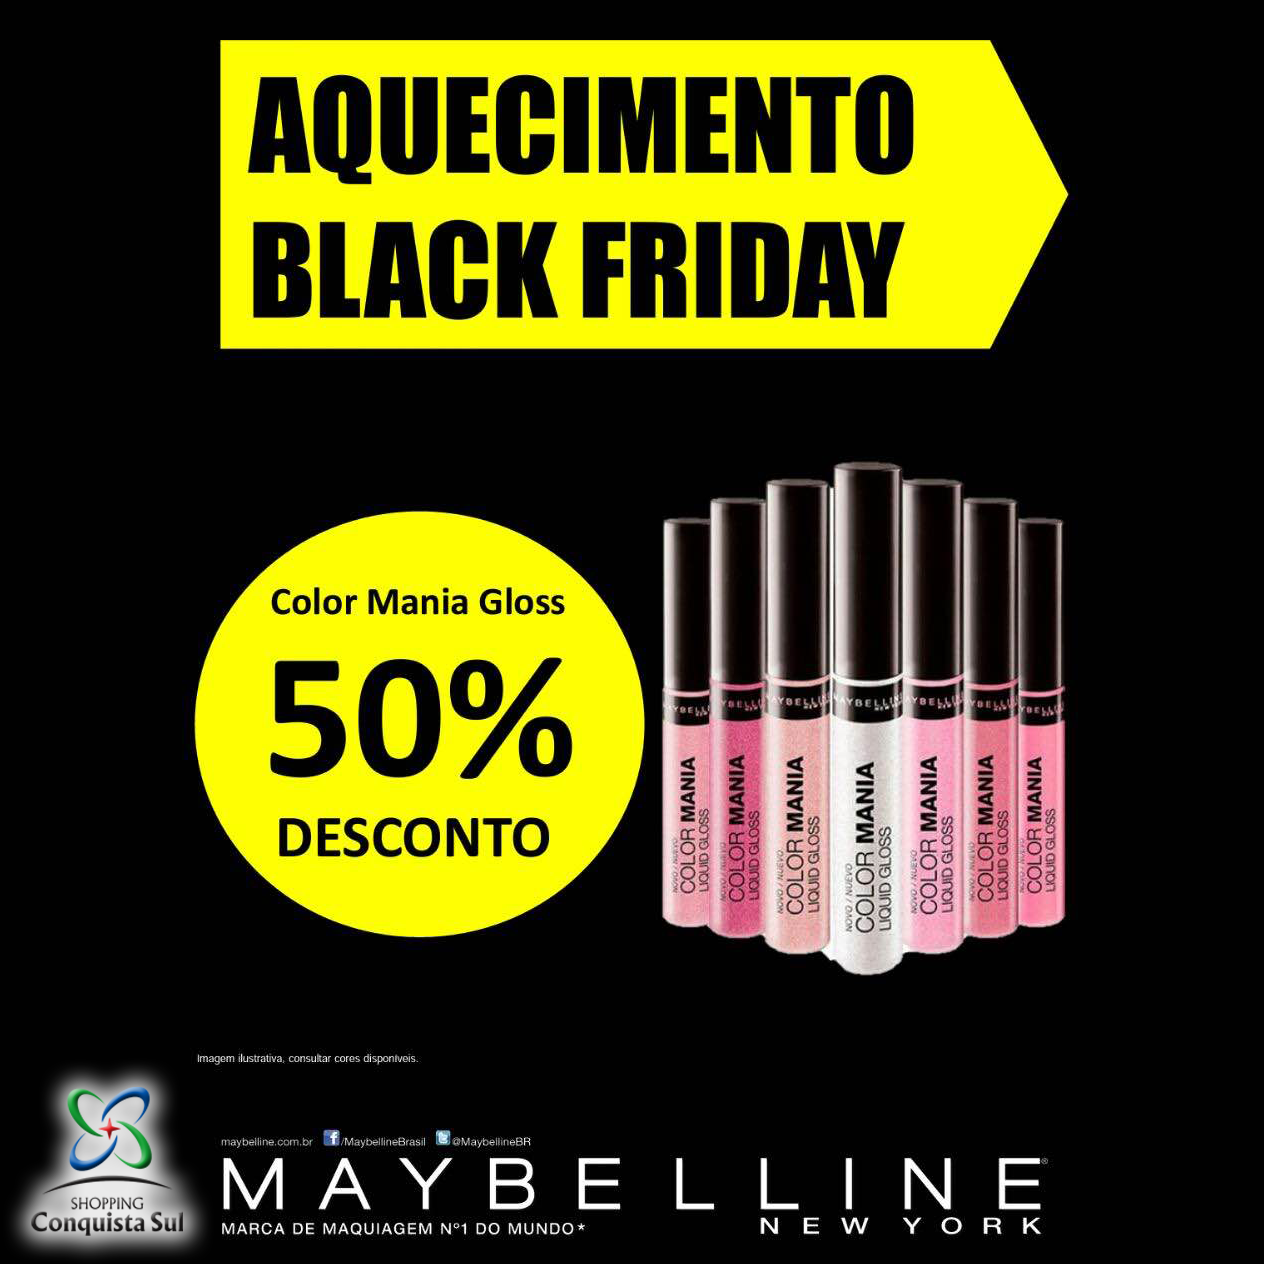 blackfriday_maybaline